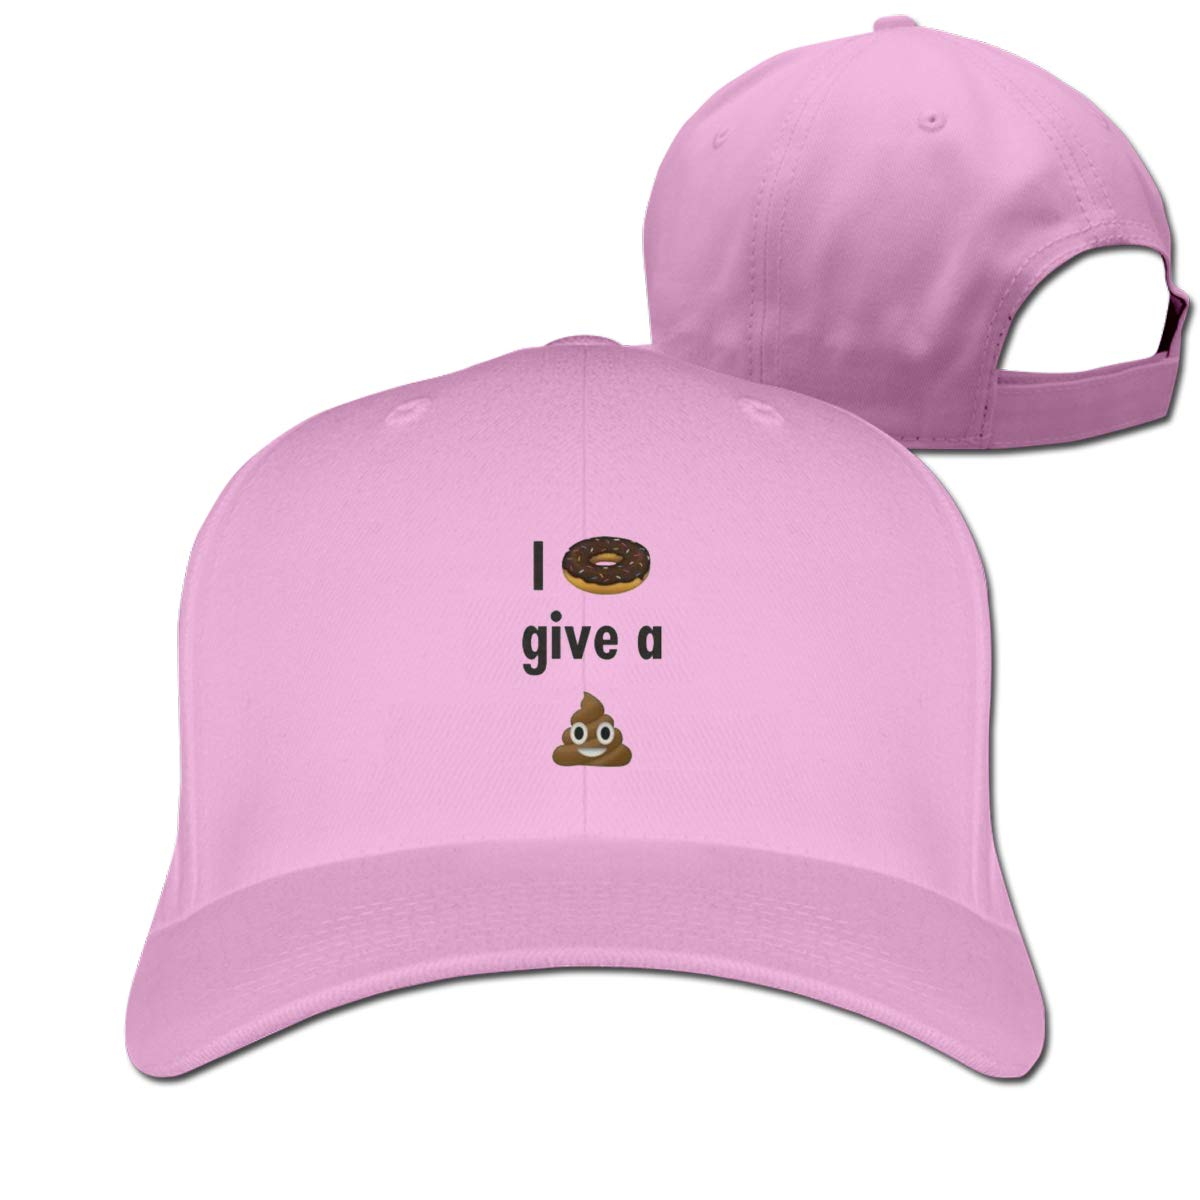 I Donut Give A Sht Poop Fashion Adjustable Cotton Baseball Caps Trucker Driver Hat Outdoor Cap Pink